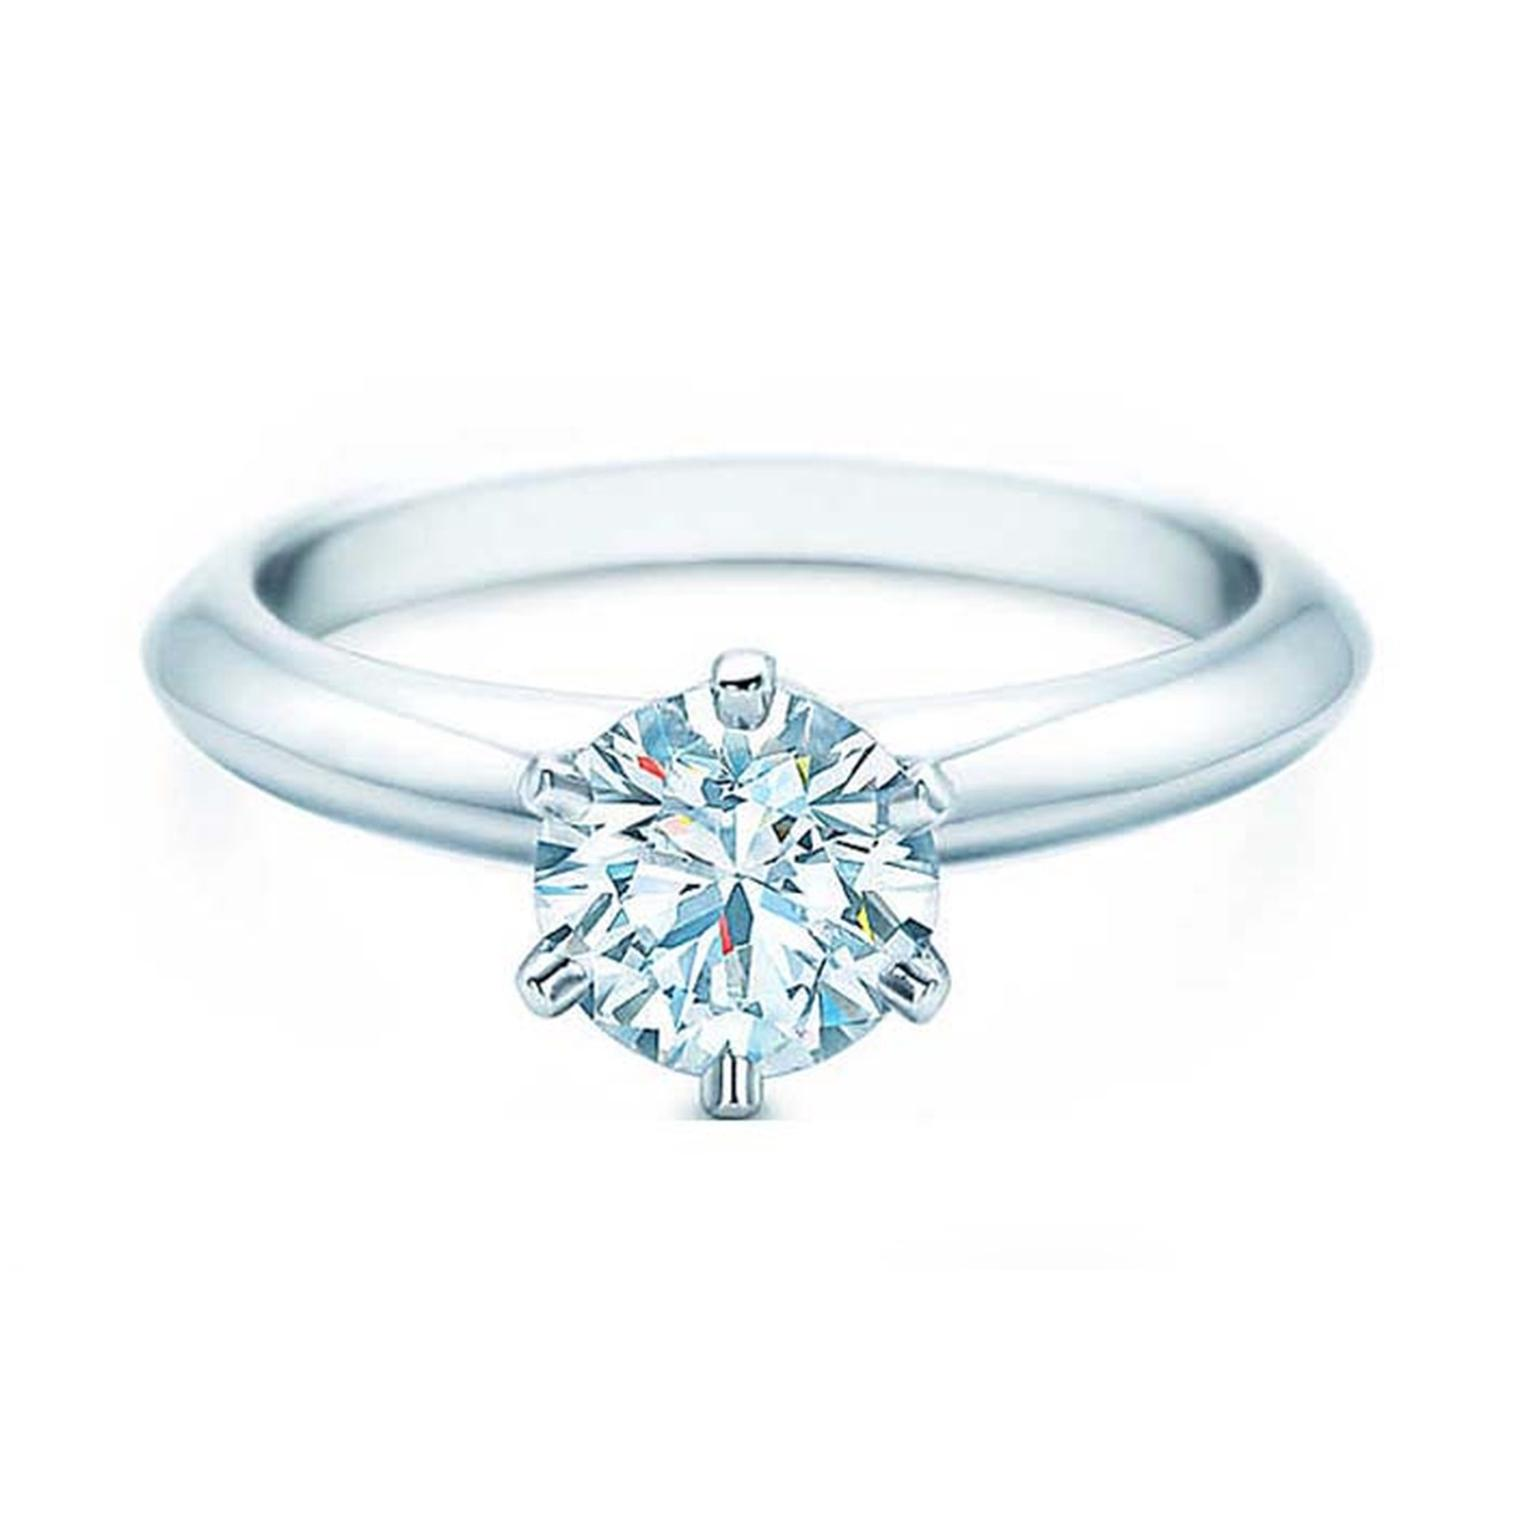 category rings stone white spence round engagement single product diamonds diamond gold